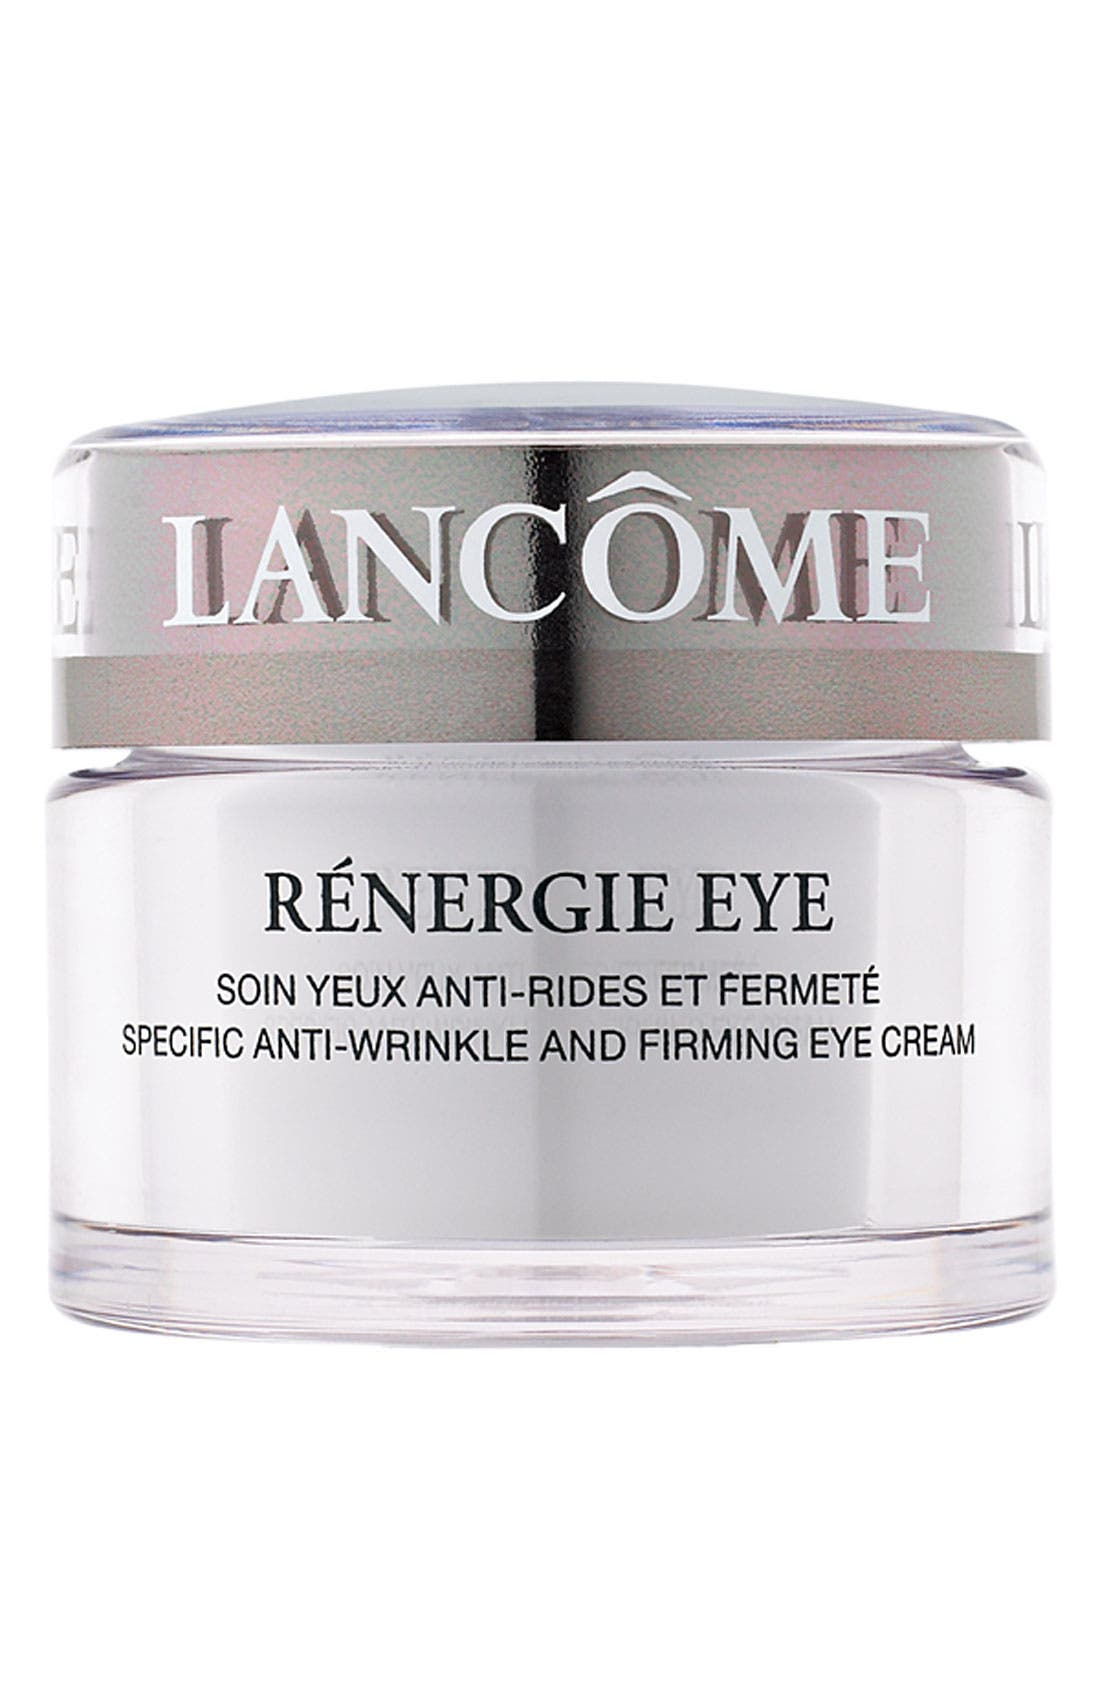 Lancôme Rénergie Eye Anti-Wrinkle Cream